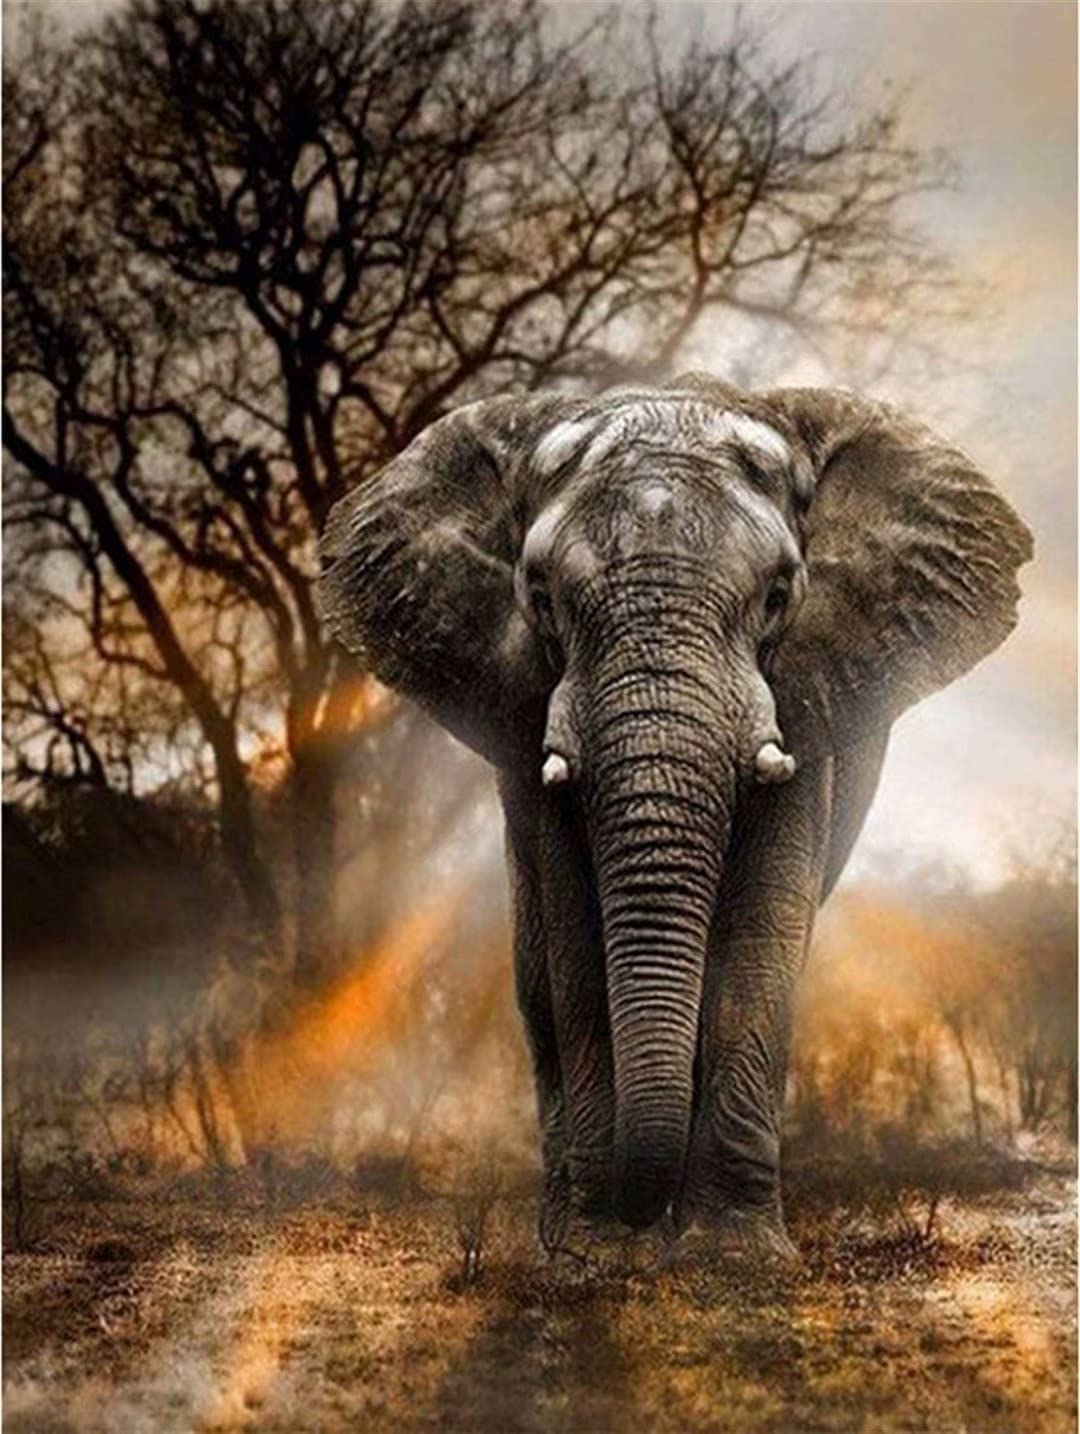 Mstoio Jigsaw Super special price Puzzles 3000 Pieces Phoenix Mall for Interesting Elephant Adult